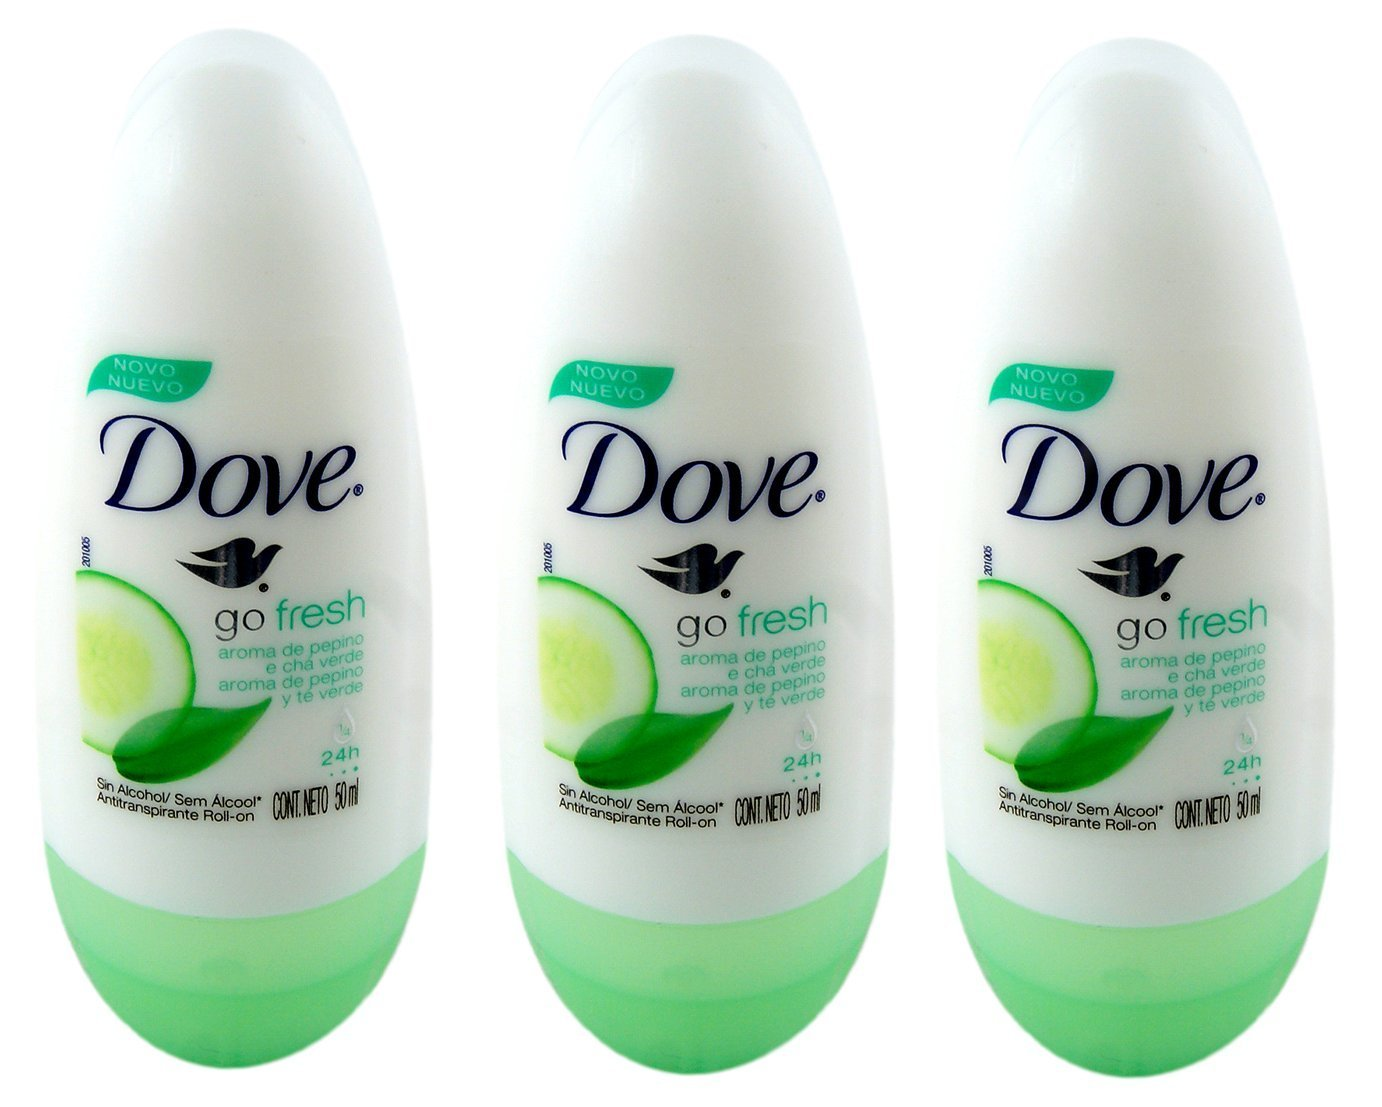 Dove Go Fresh Cucumber & Green Tea Scent Anti-perspirant Deodorant Roll-on 50ml (1.7 Fluid Ounce). (Pack of 3)